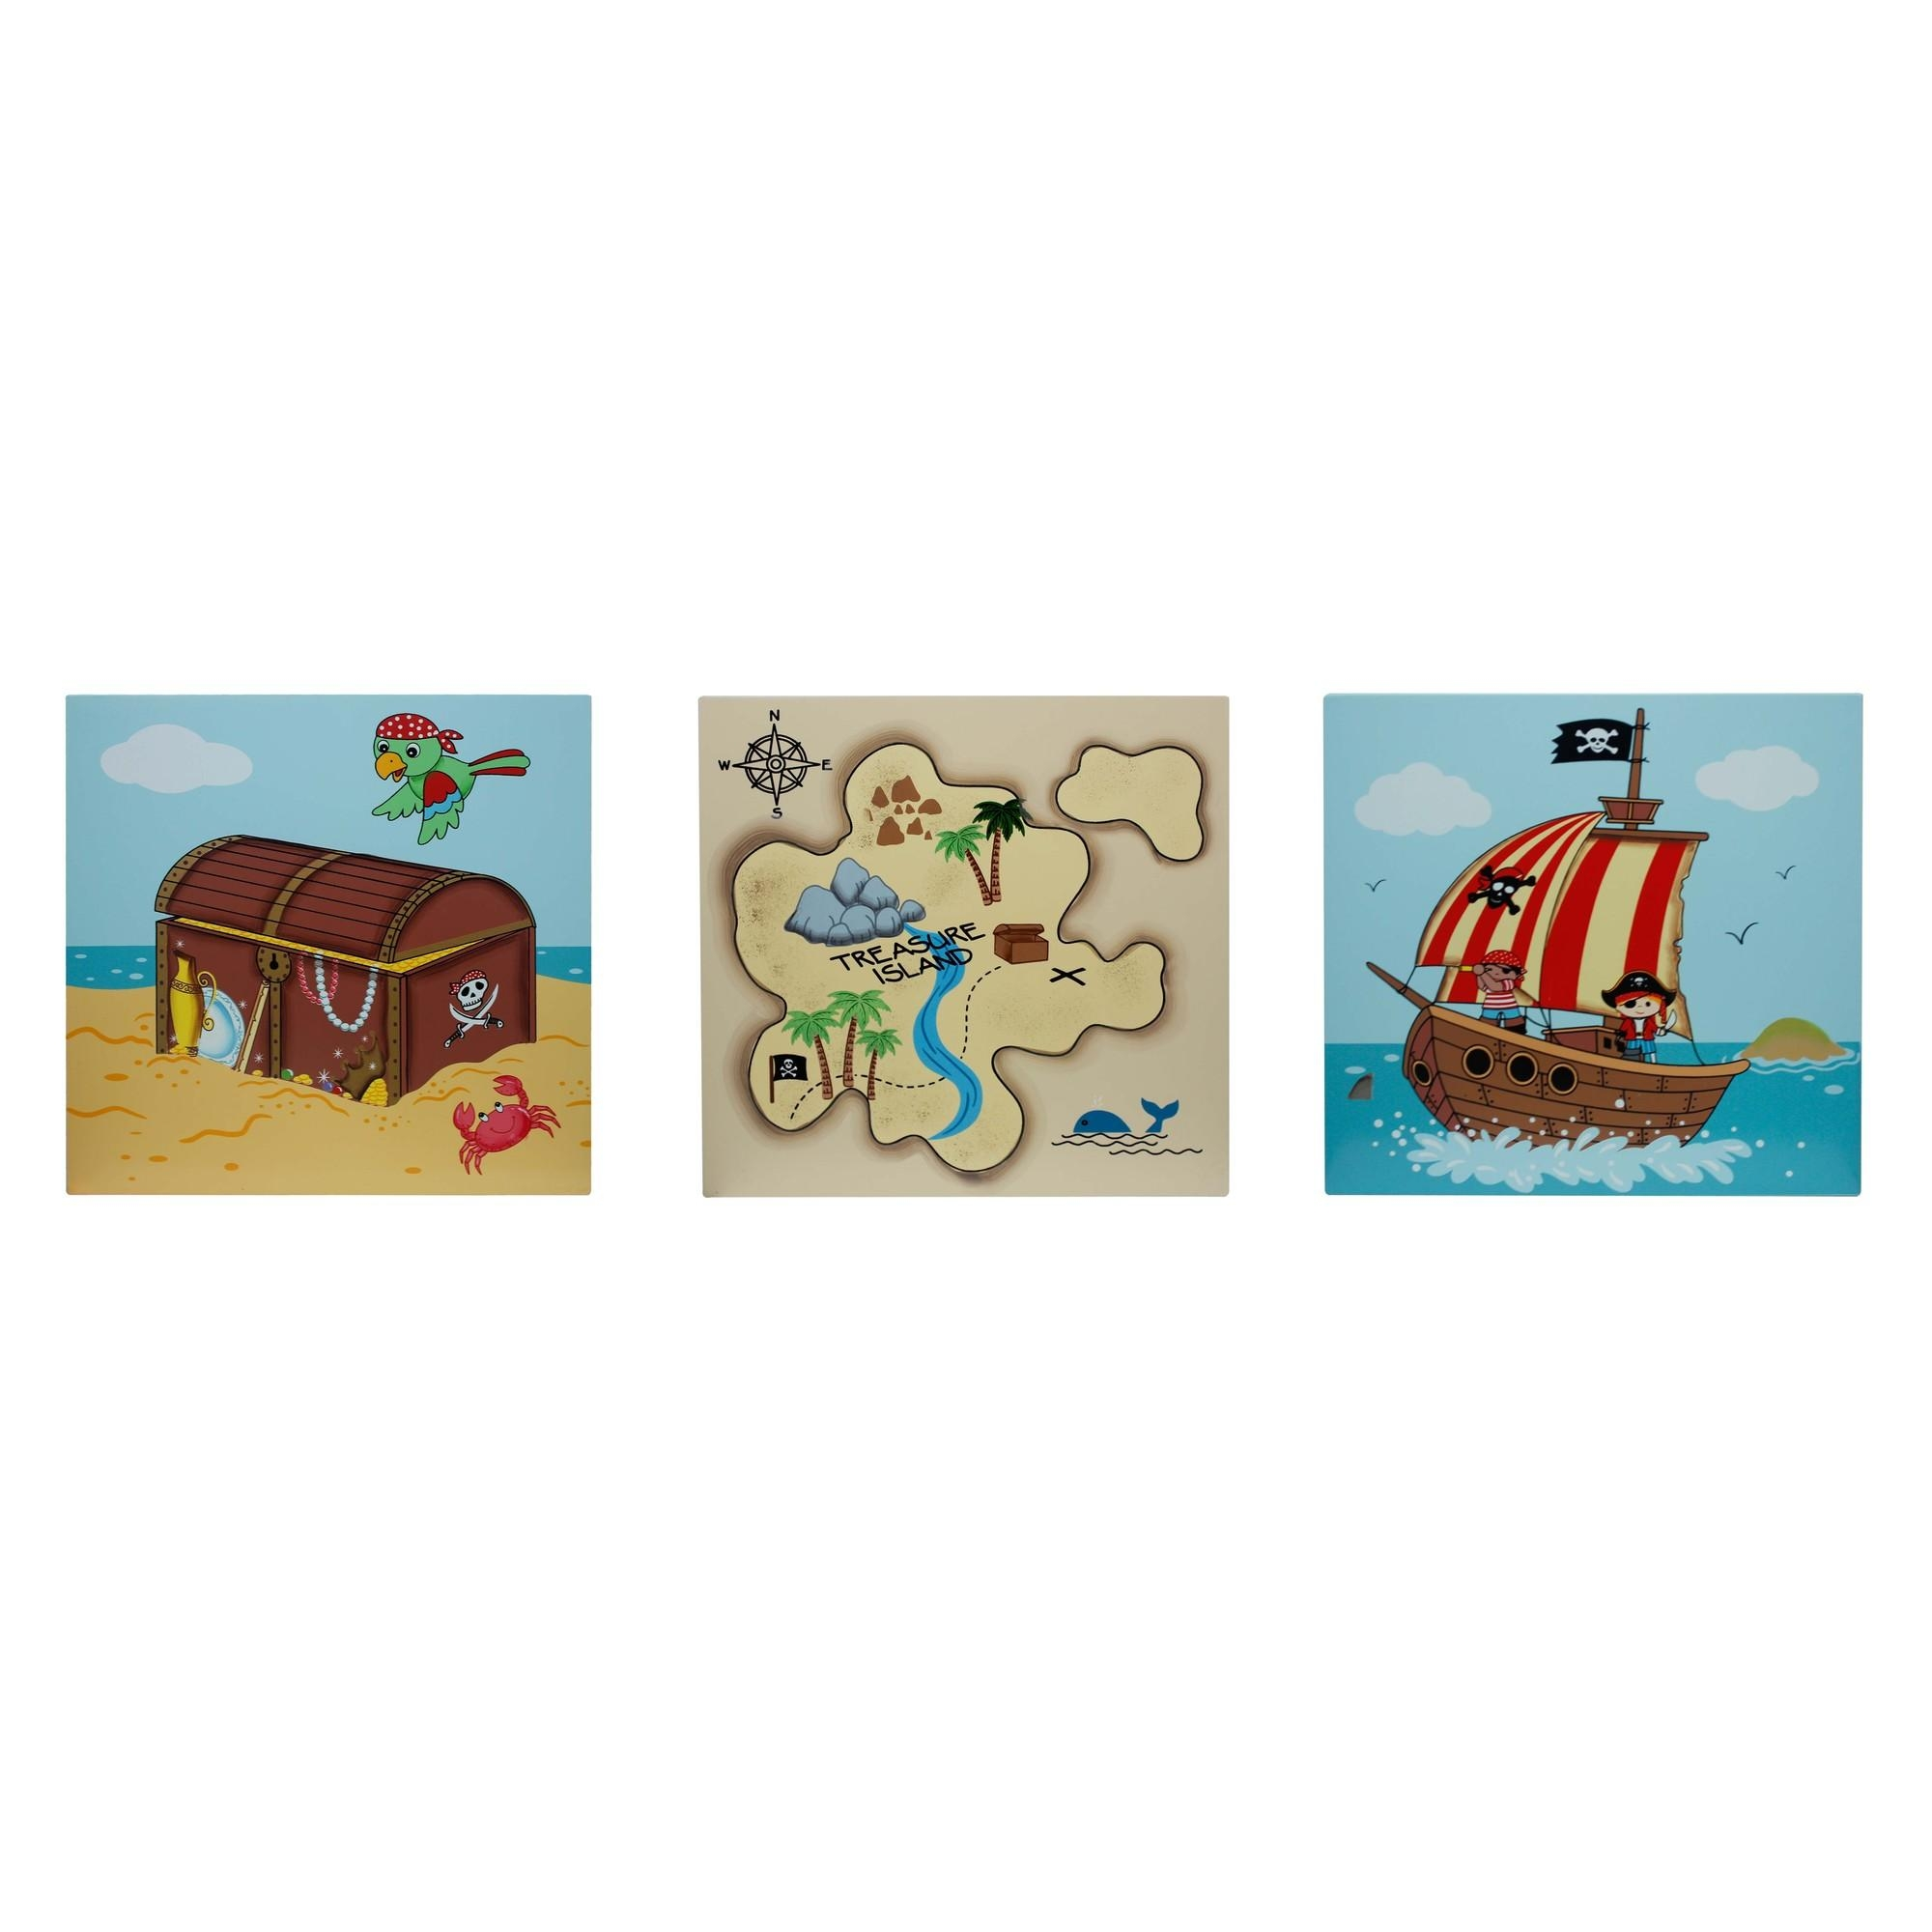 3 Piece Fantasy Fields Pirates Island Wall Art Set throughout Wall Art Sets Of 3